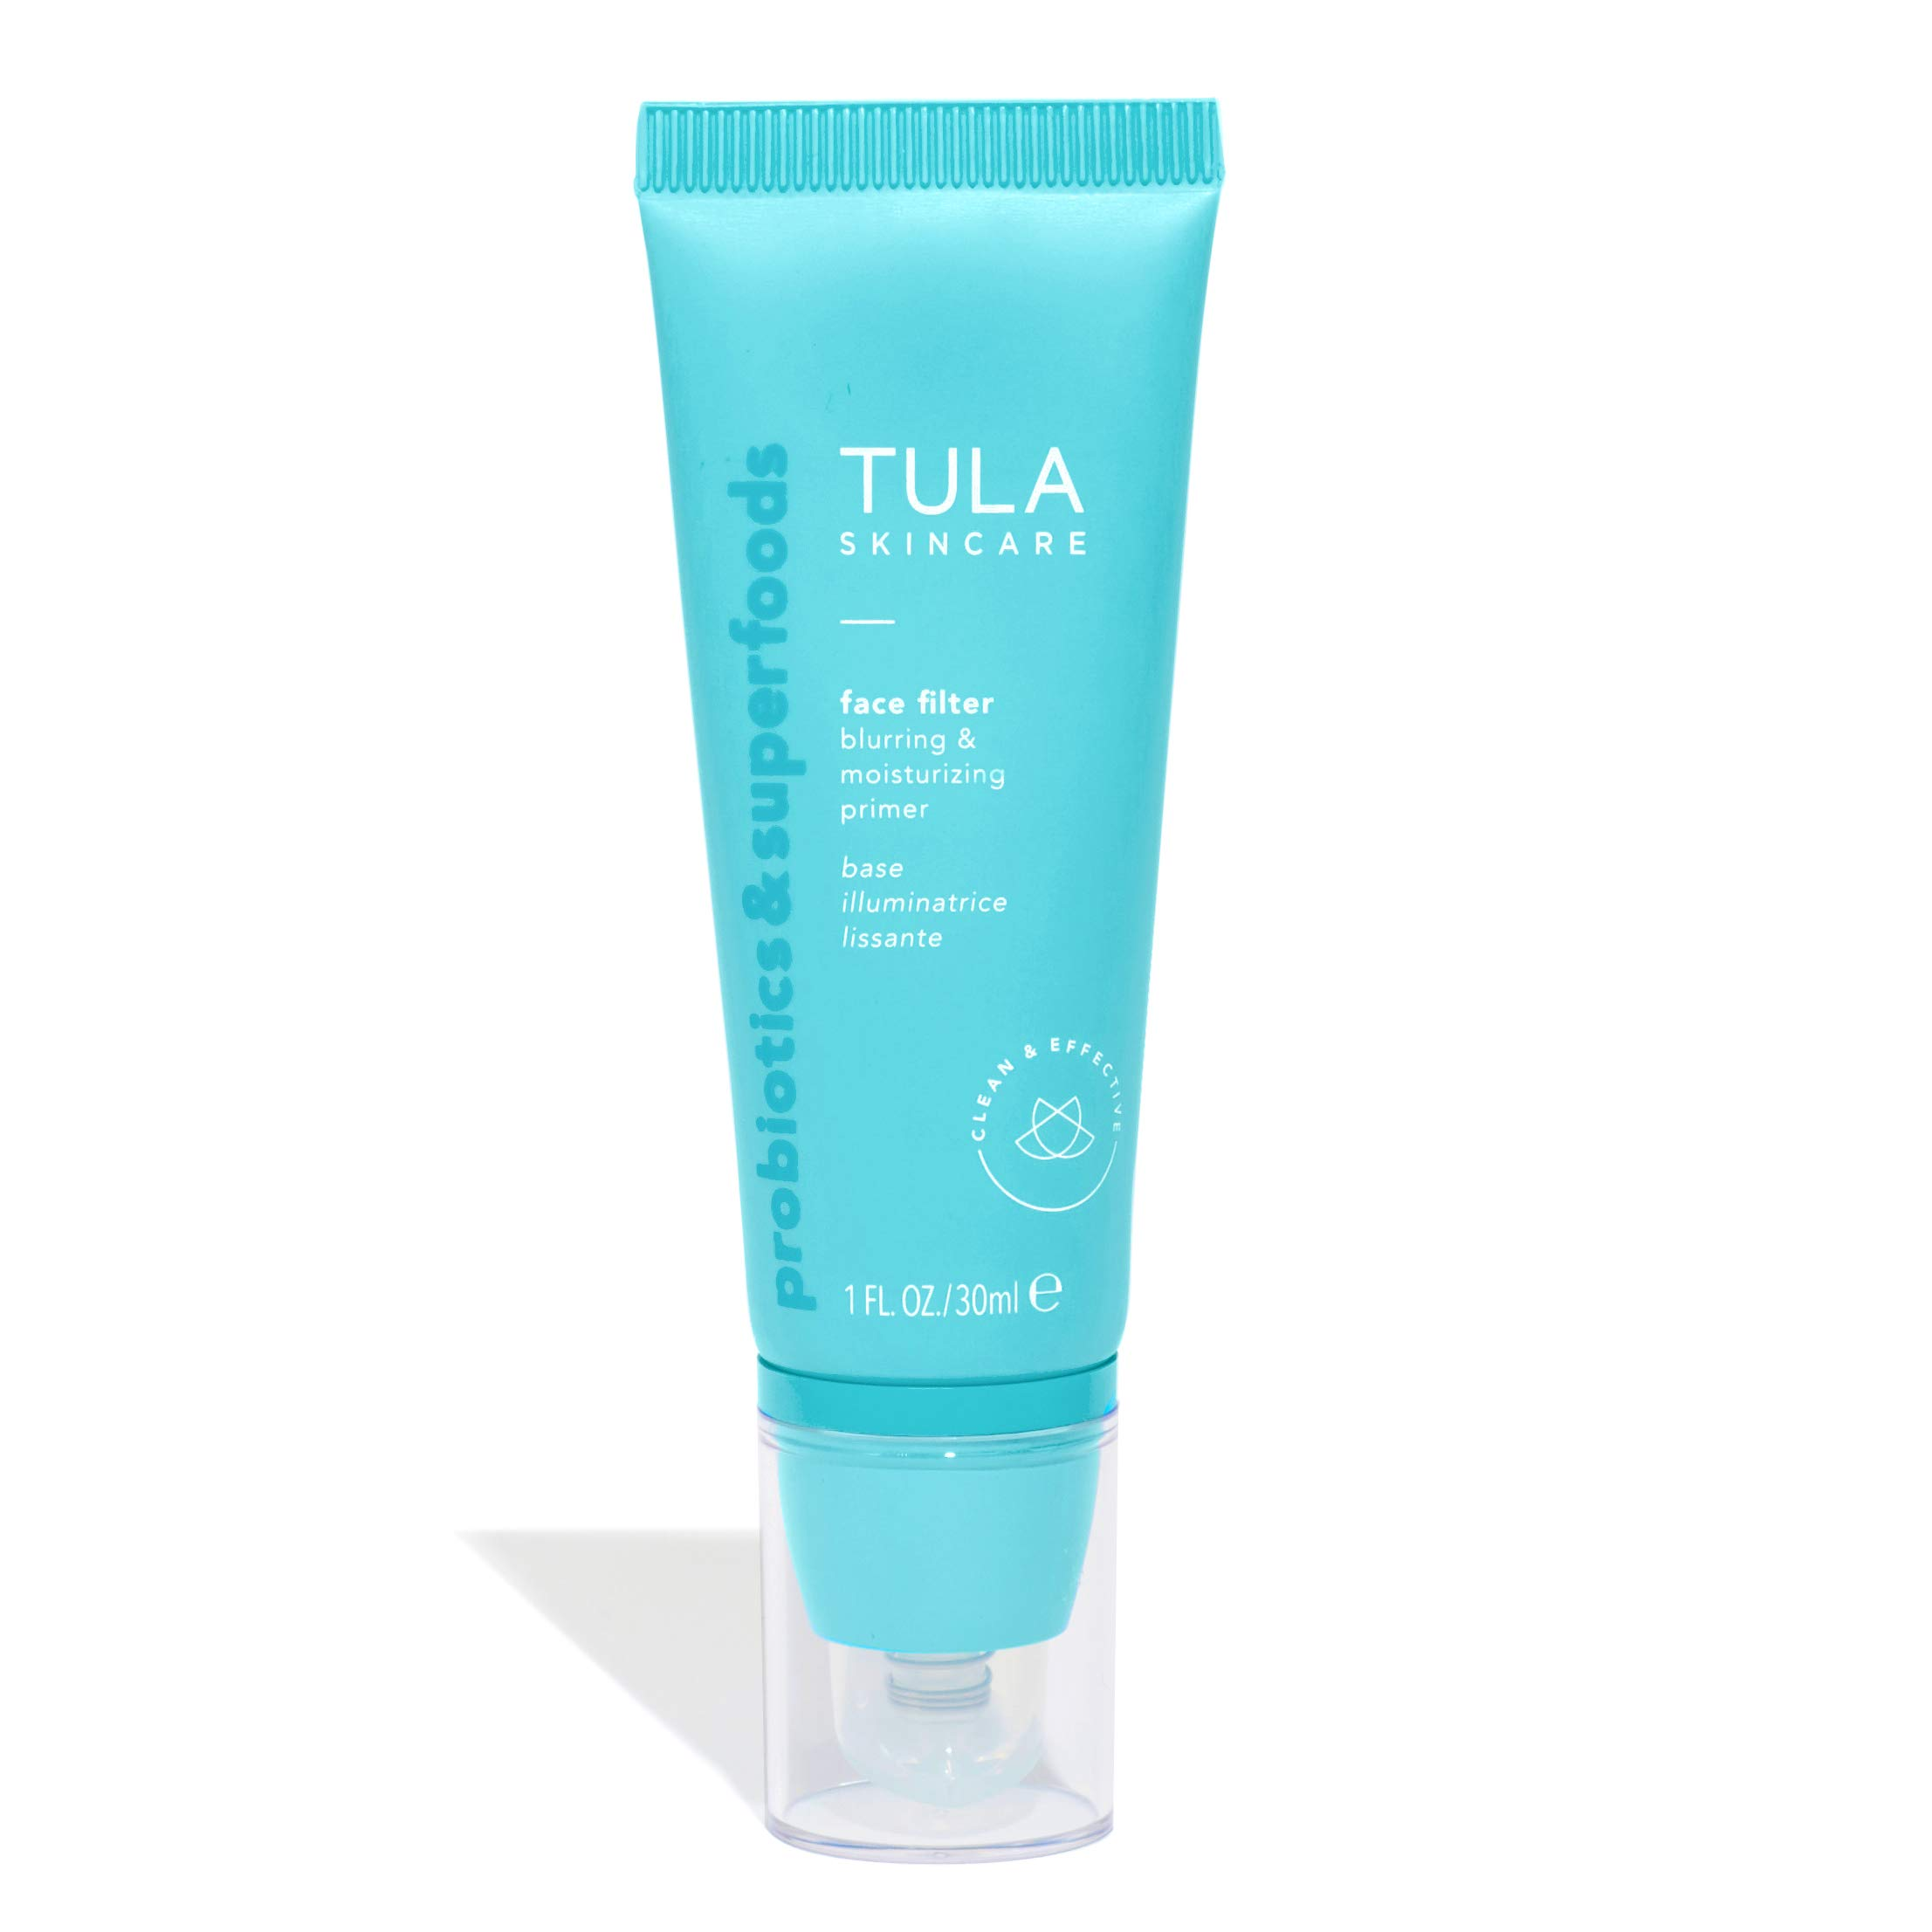 TULA Probiotic Skin Care Face Filter Blurring and Moisturizing Primer   Smoothing Face Primer, Evens the Appearance of Skin Tone & Redness, Hydrates & Improves Makeup Wear   1 fl. oz.